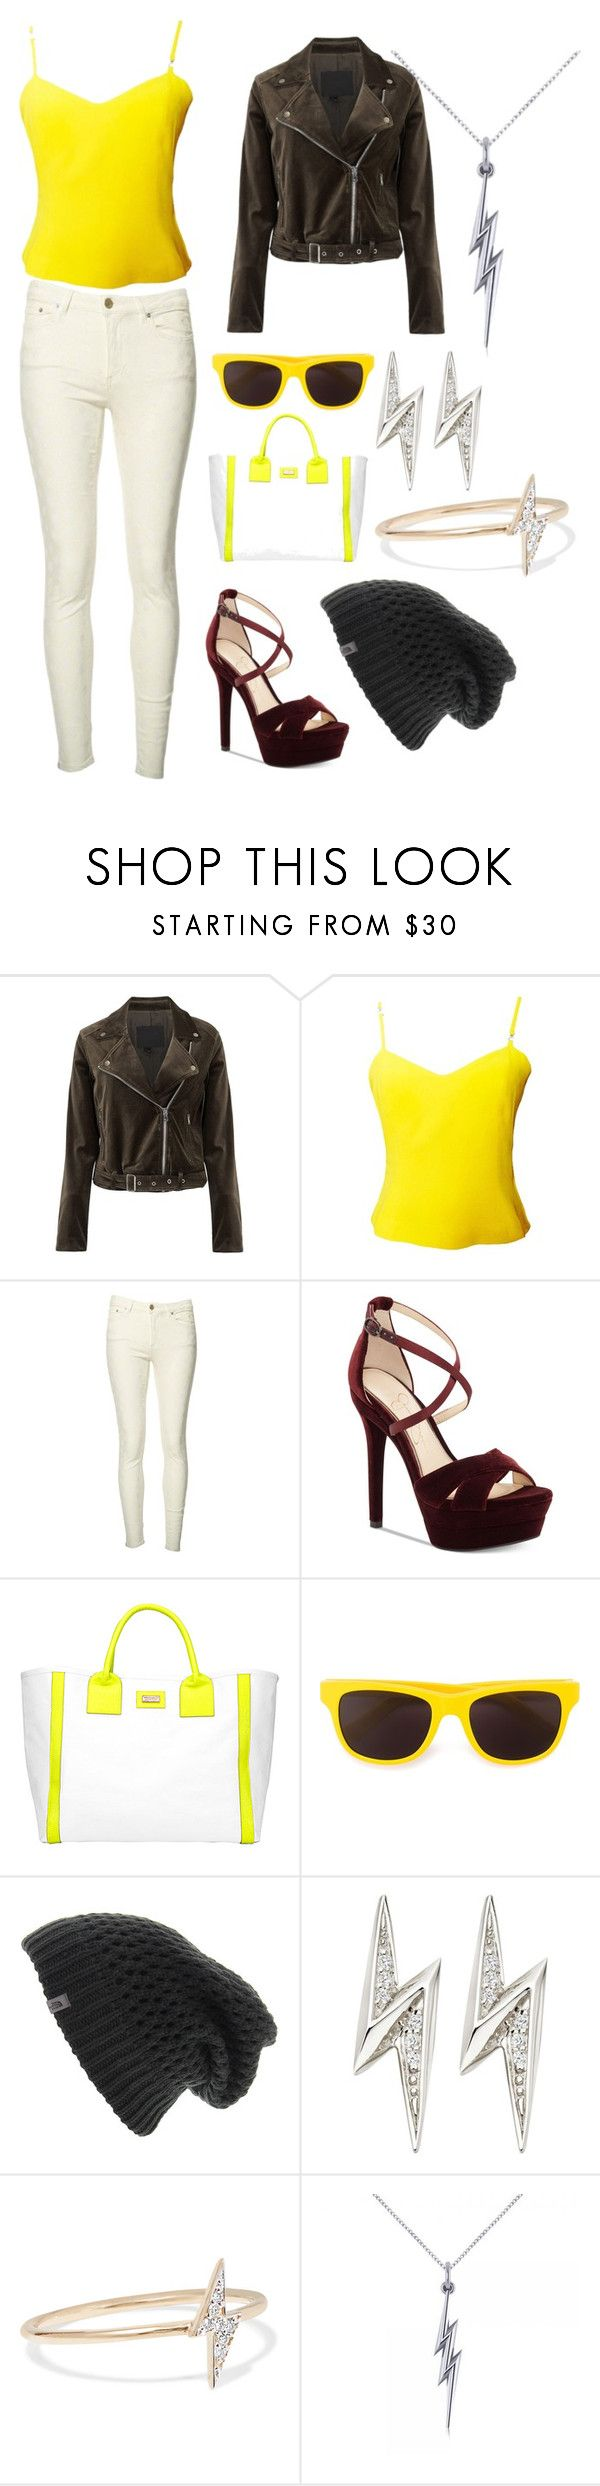 """Jolteon inspired"" by monsterhug-ej ❤ liked on Polyvore featuring Paige Denim, Versus, Acne Studios, Jessica Simpson, Stephanie Johnson, Moschino, The North Face, Astley Clarke, I+I and Allurez"